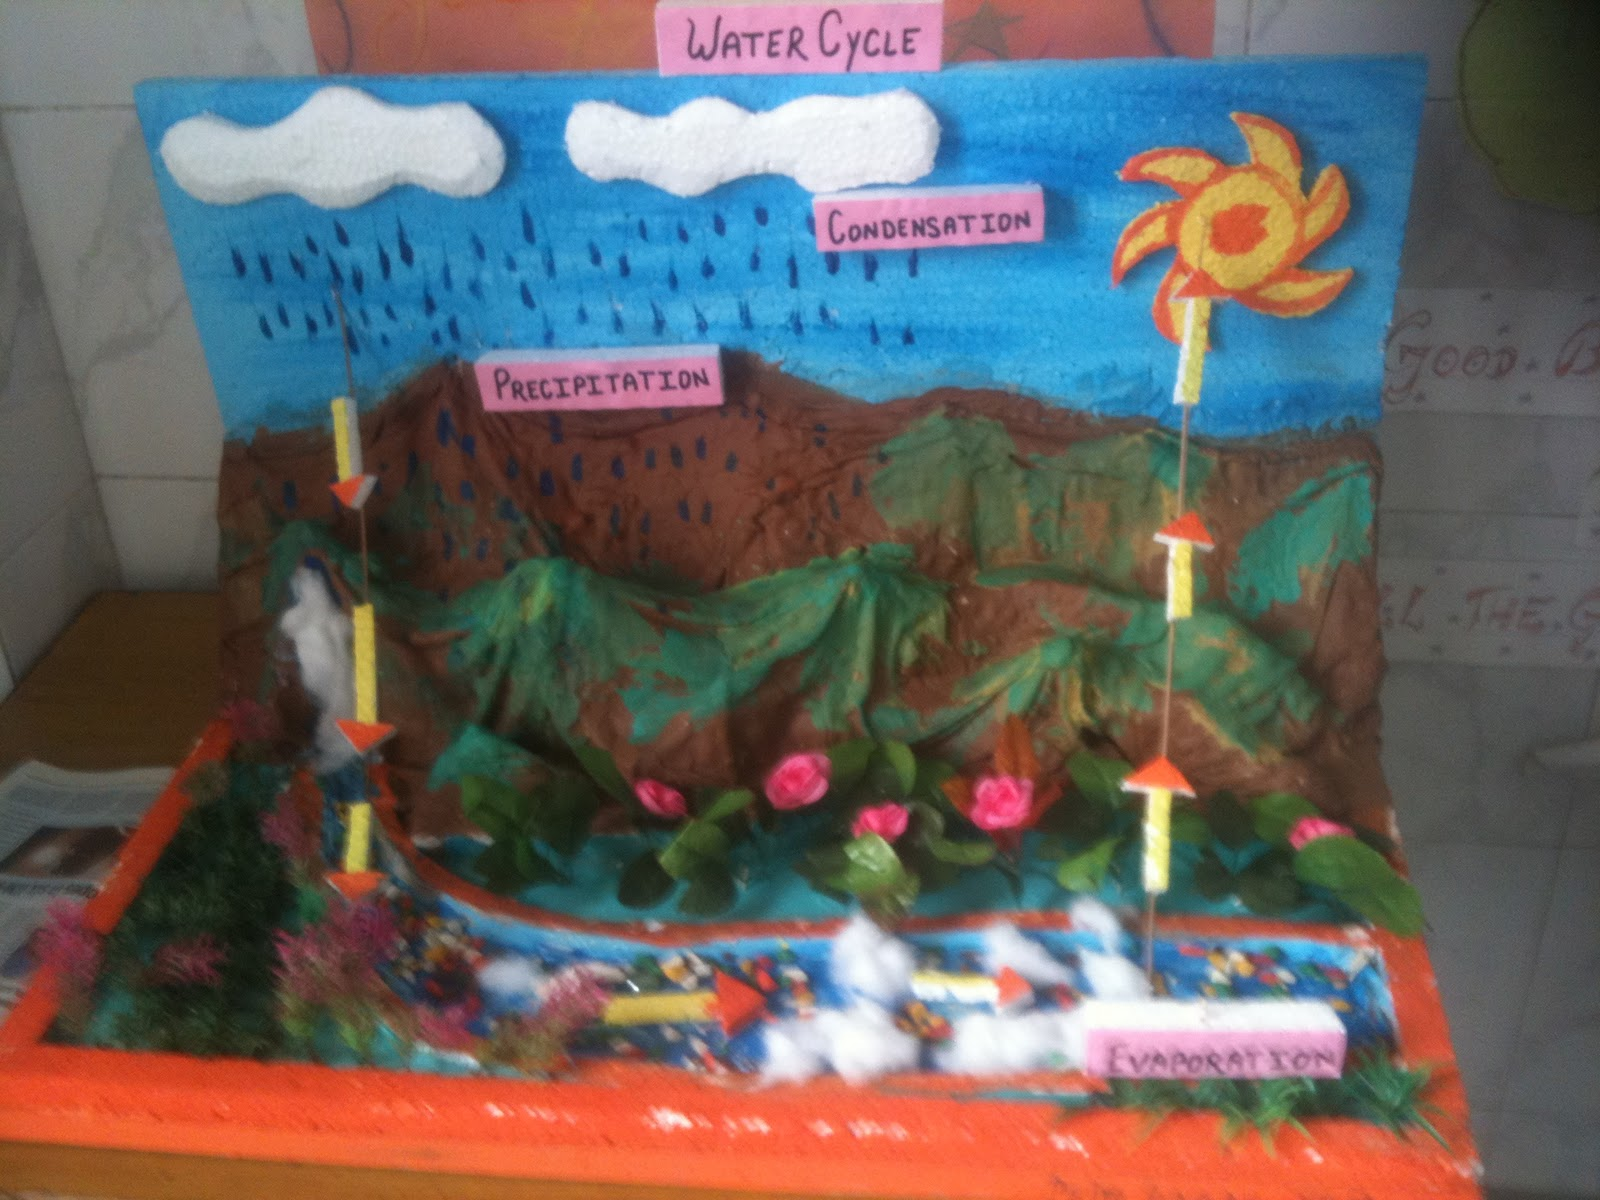 Water Cycle Model 2